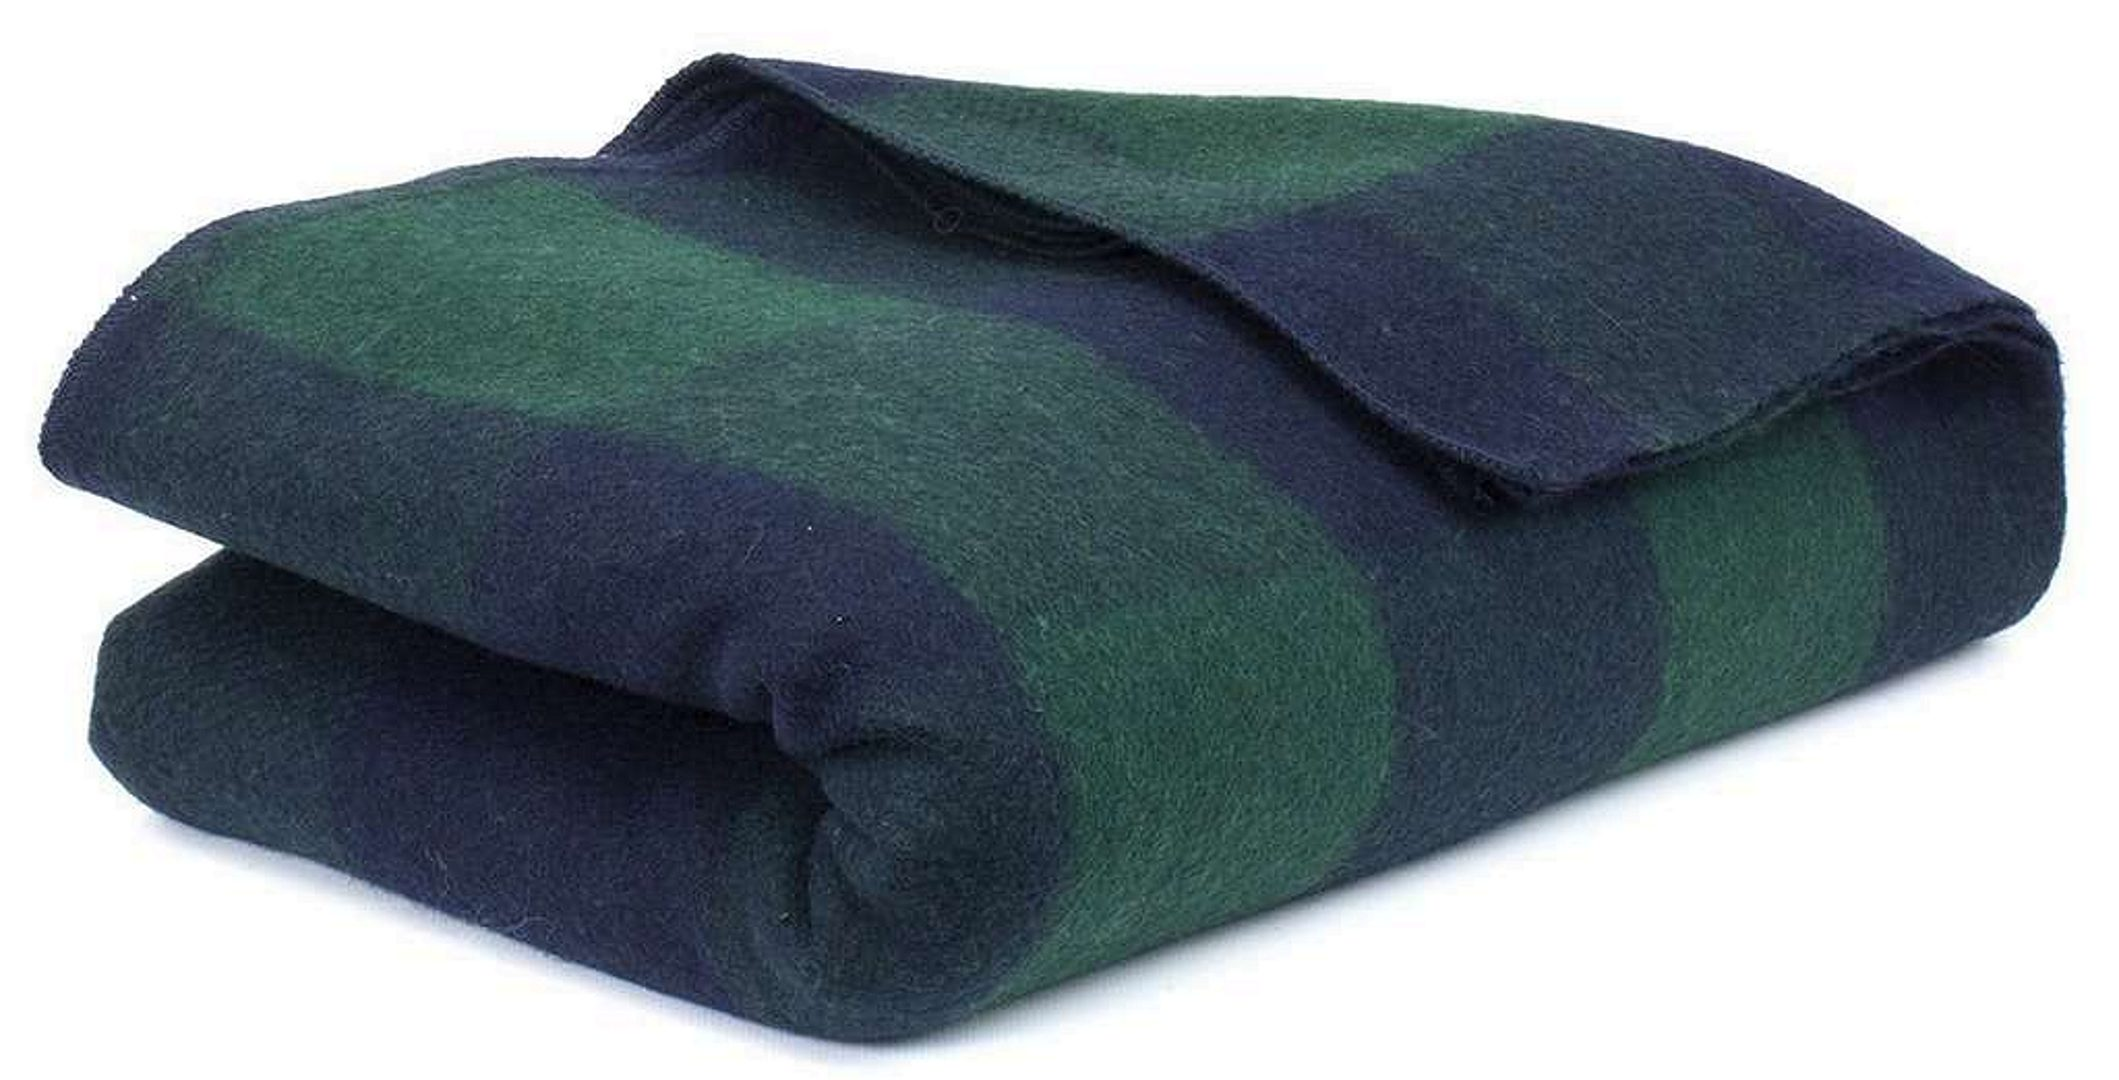 EKTOS 100% Wool Camping Blanket